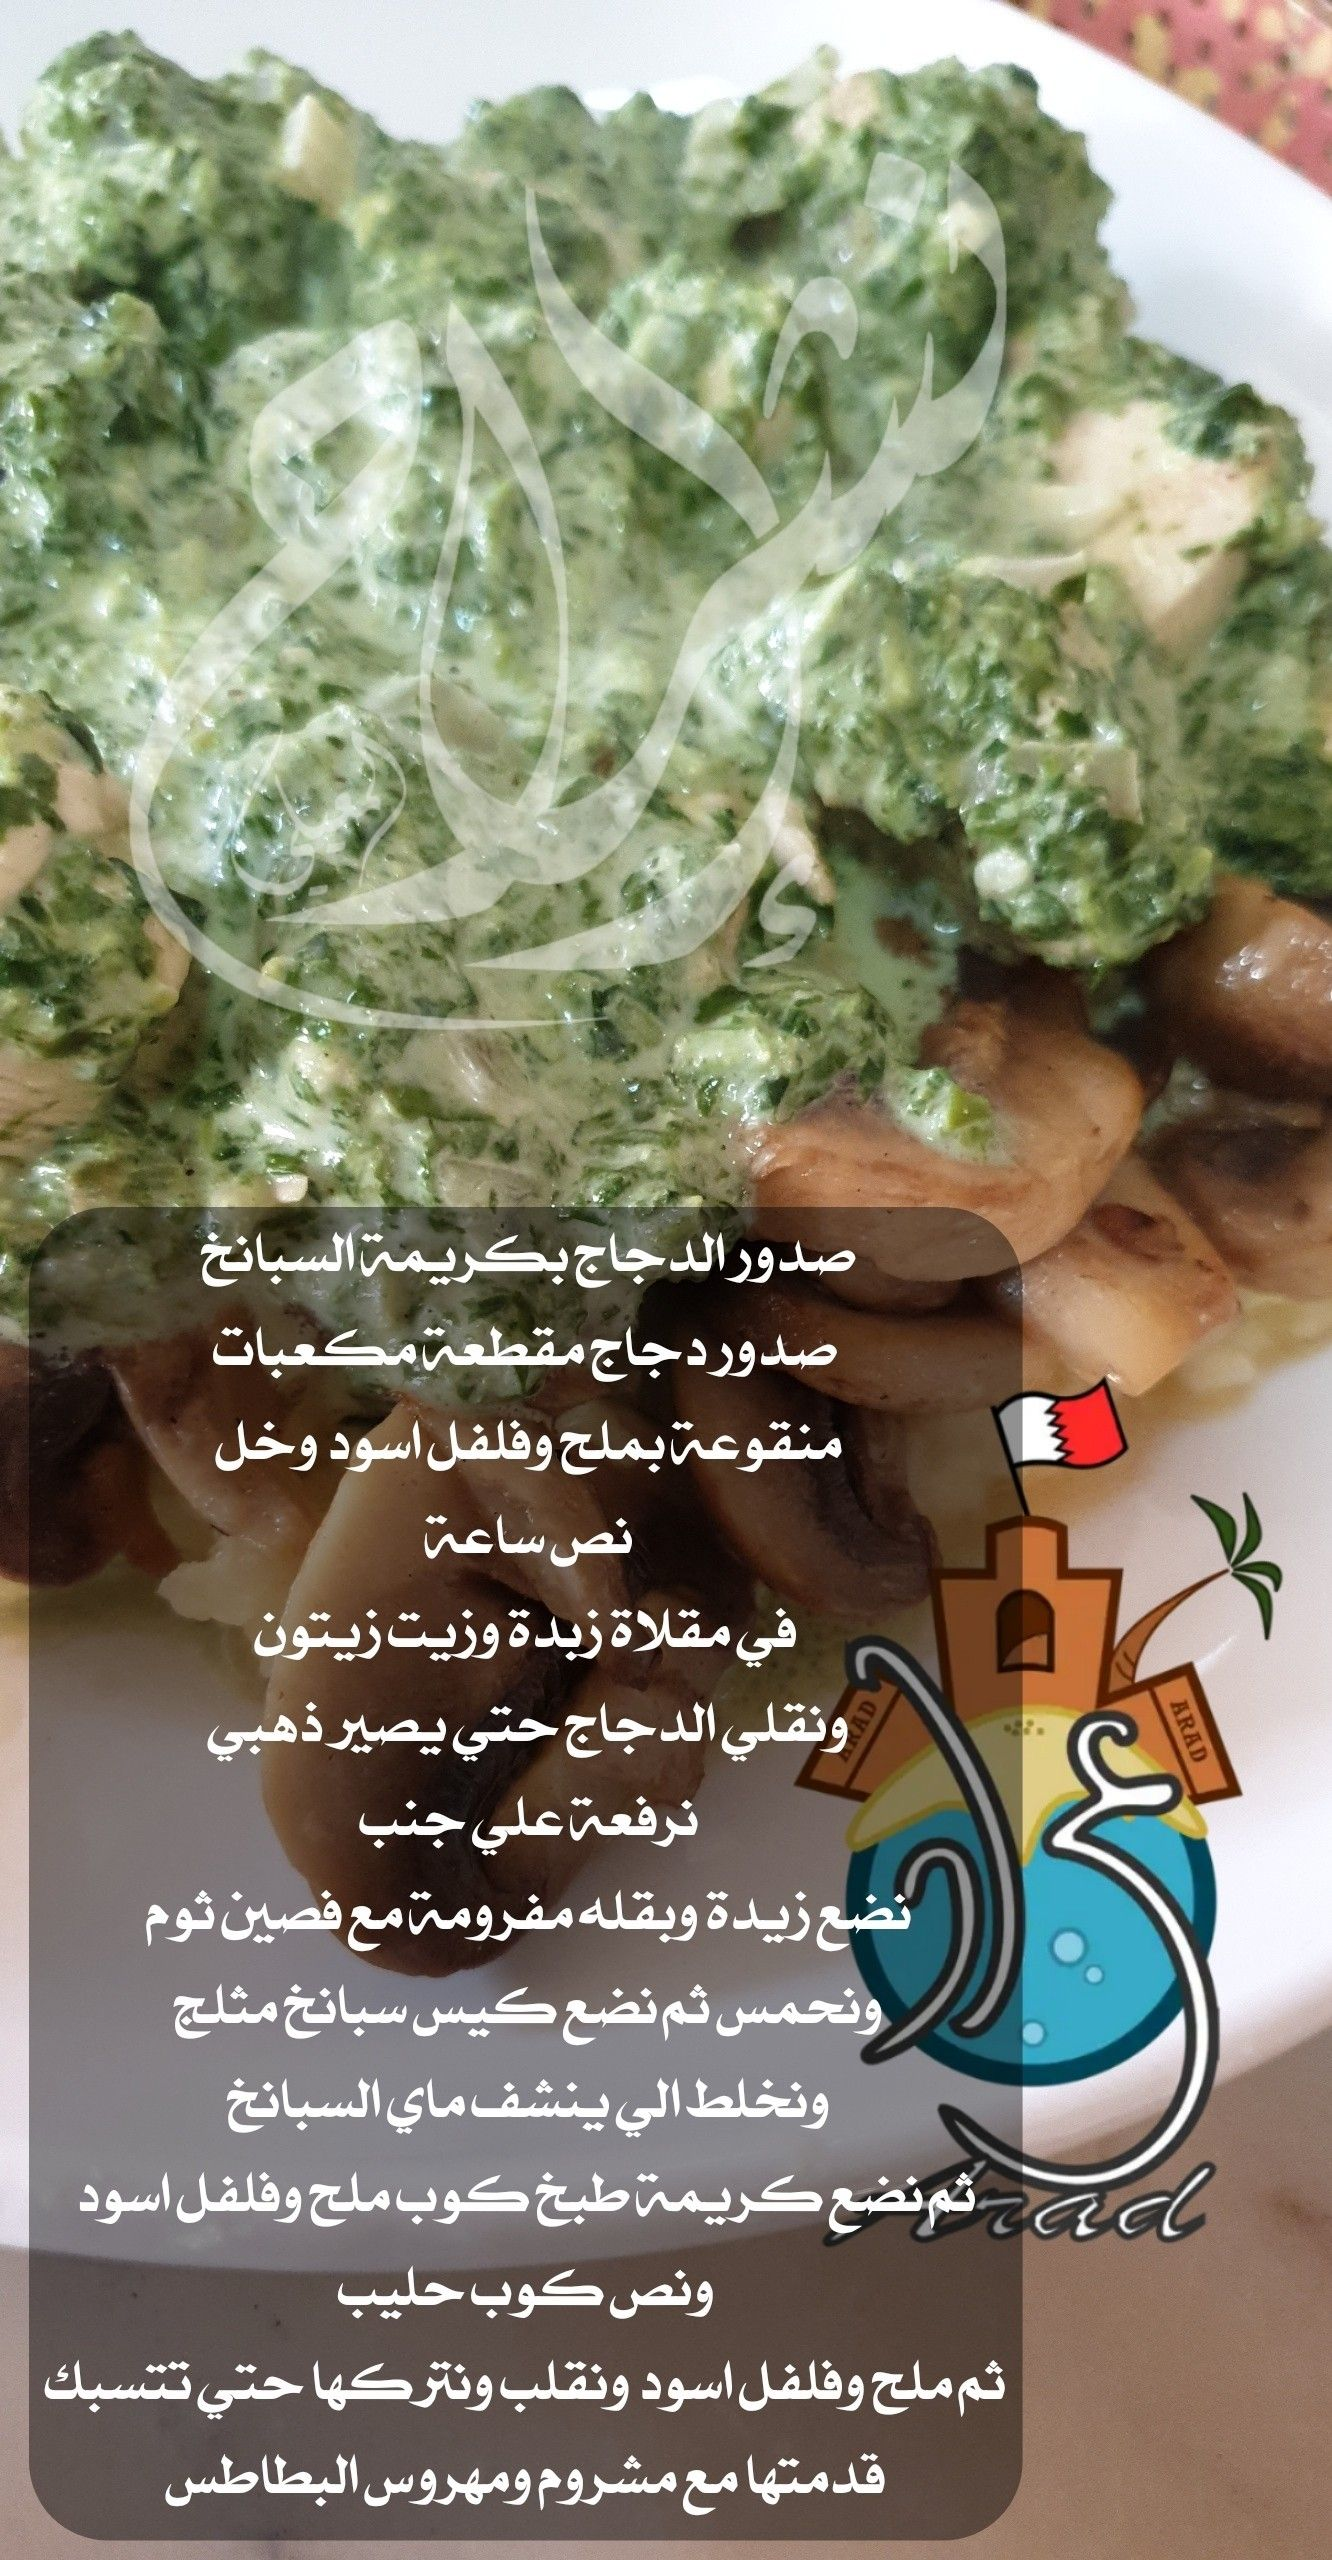 Pin By نوران ايمن On طبخ من تجميعي Arabic Food Yummy Food Cooking Recipes